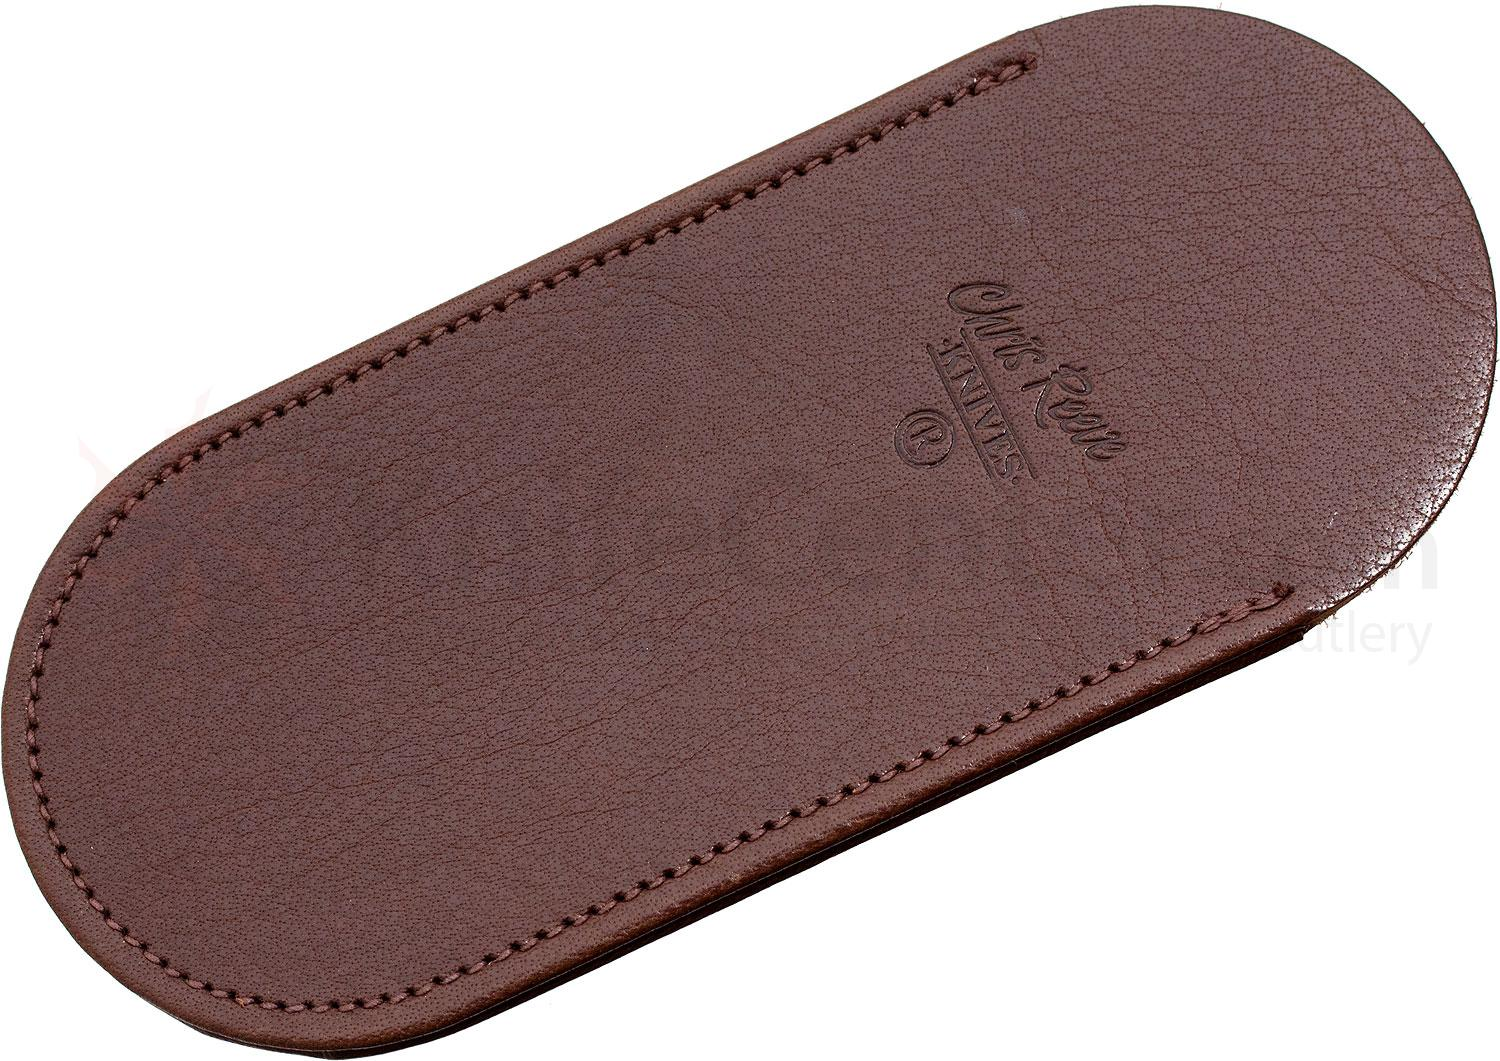 Chris Reeve Large Calfskin Pouch for Large Sebenzas